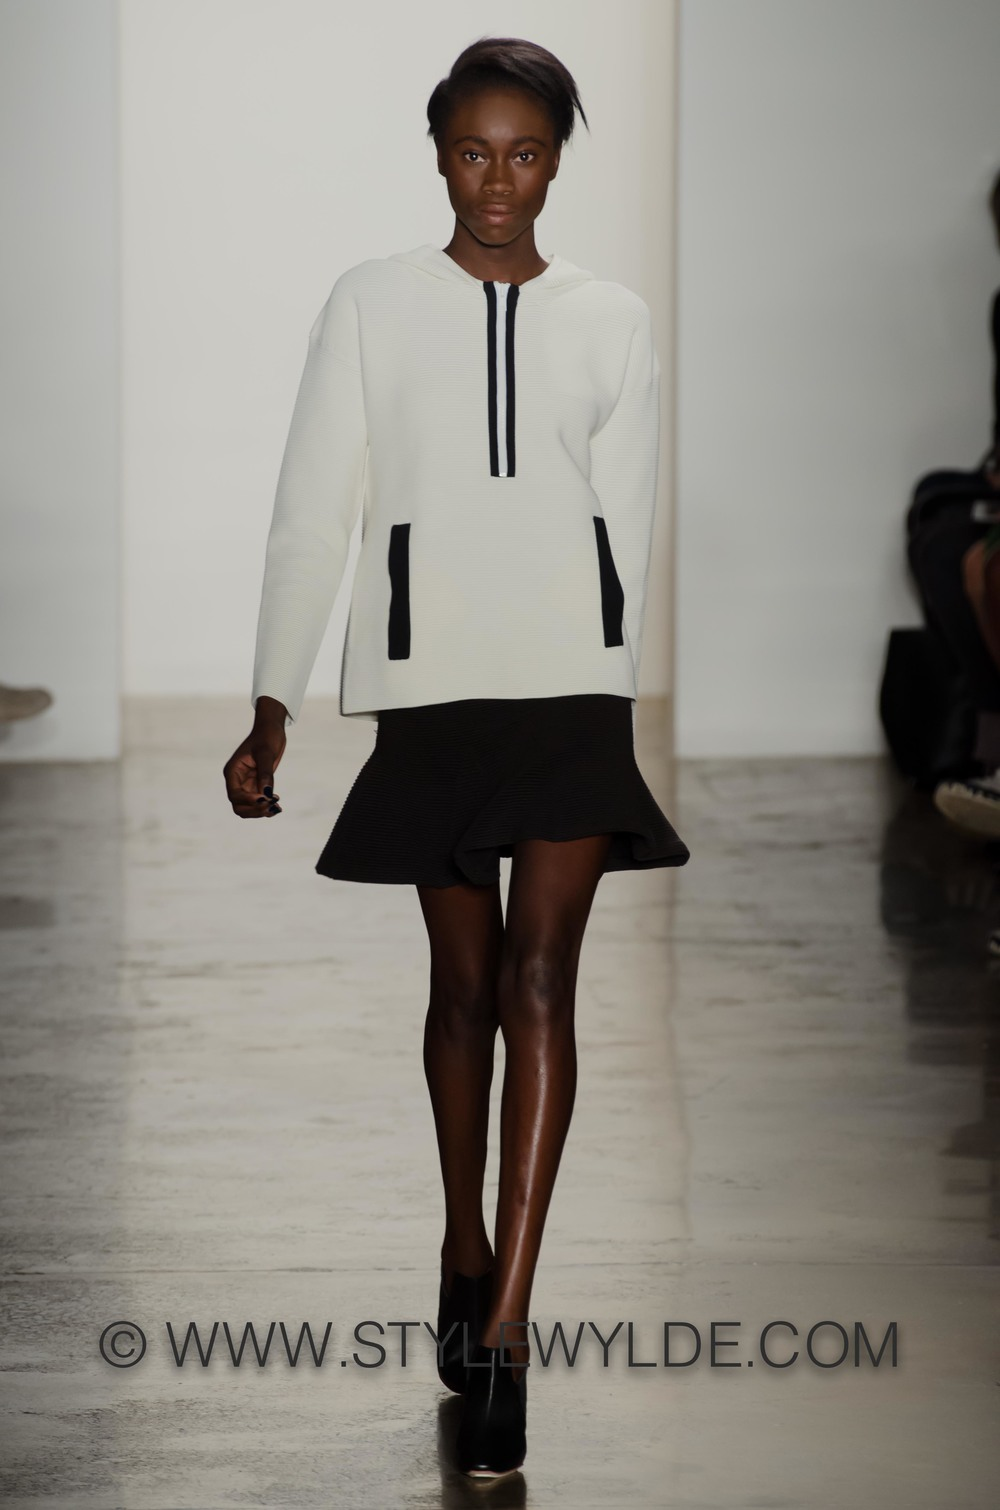 stylewylde_timo_weiland_gallery_ss2014-7.jpg